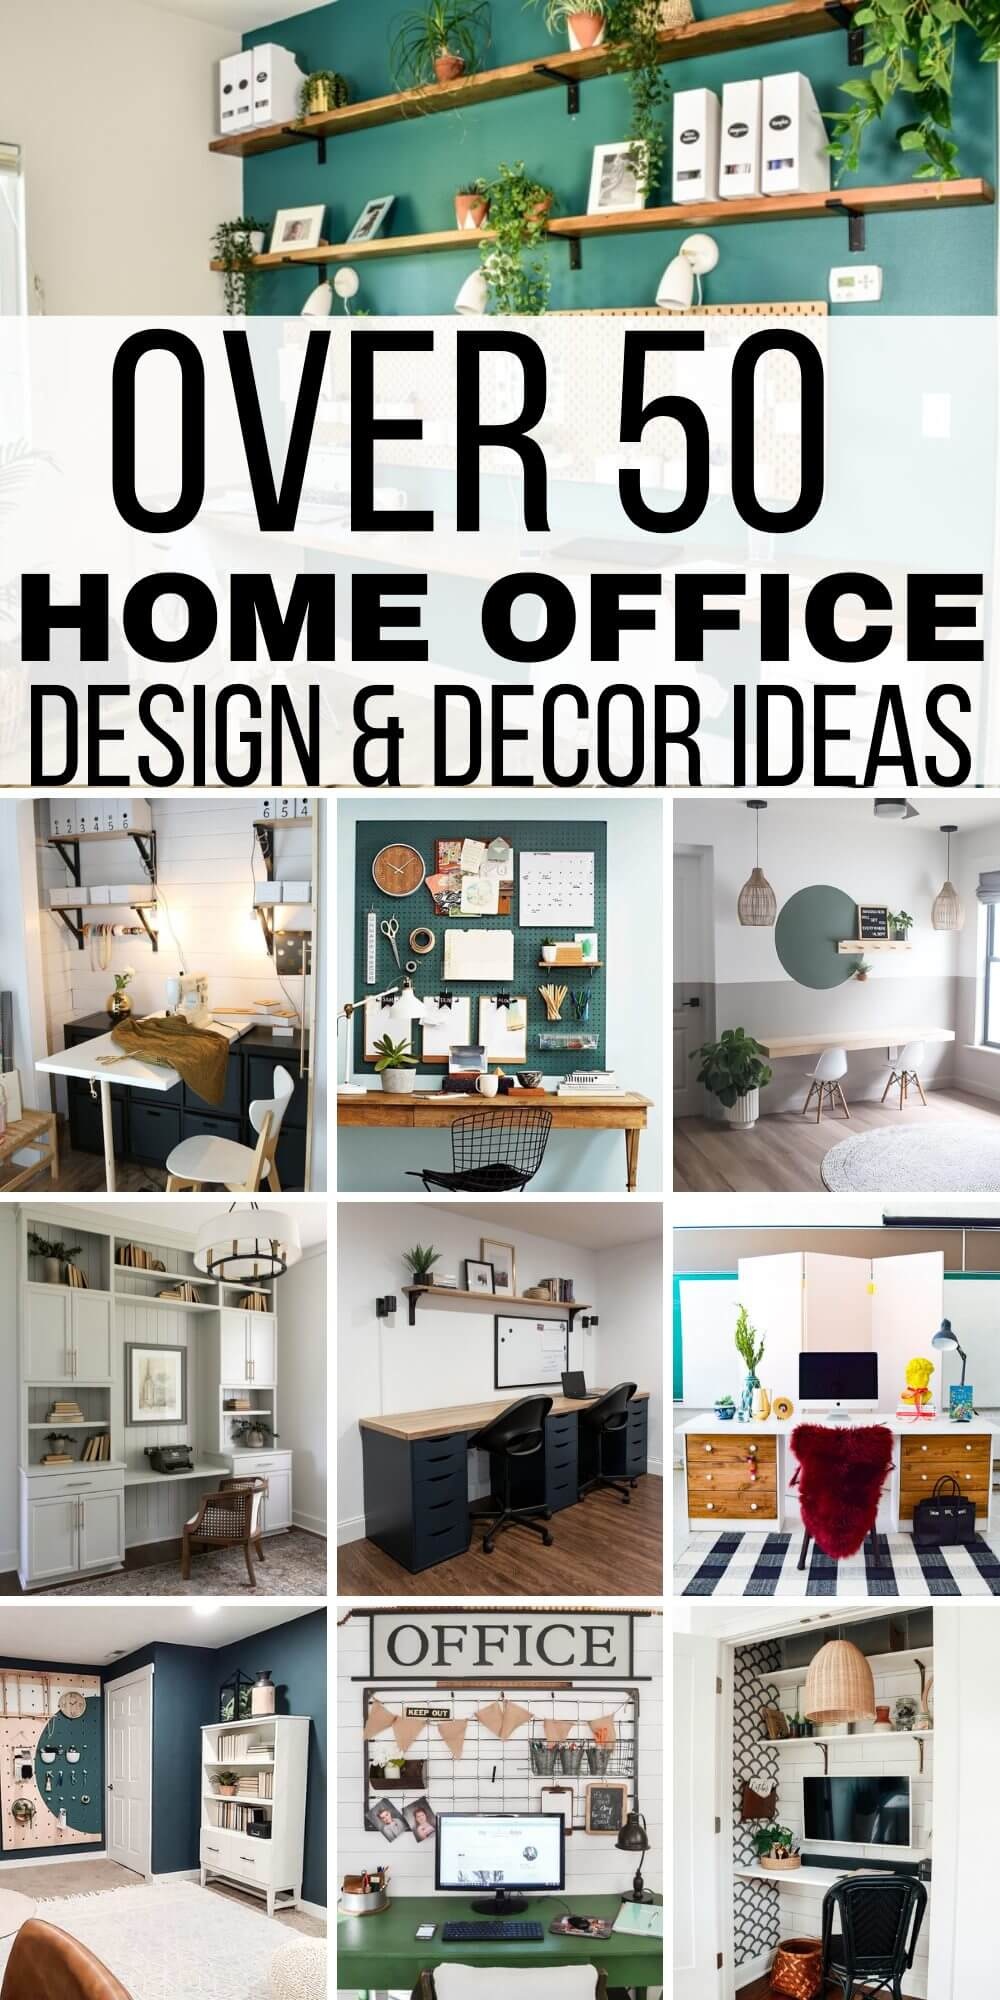 Over 50 Home Office Ideas to Make Your Work at Home Better!